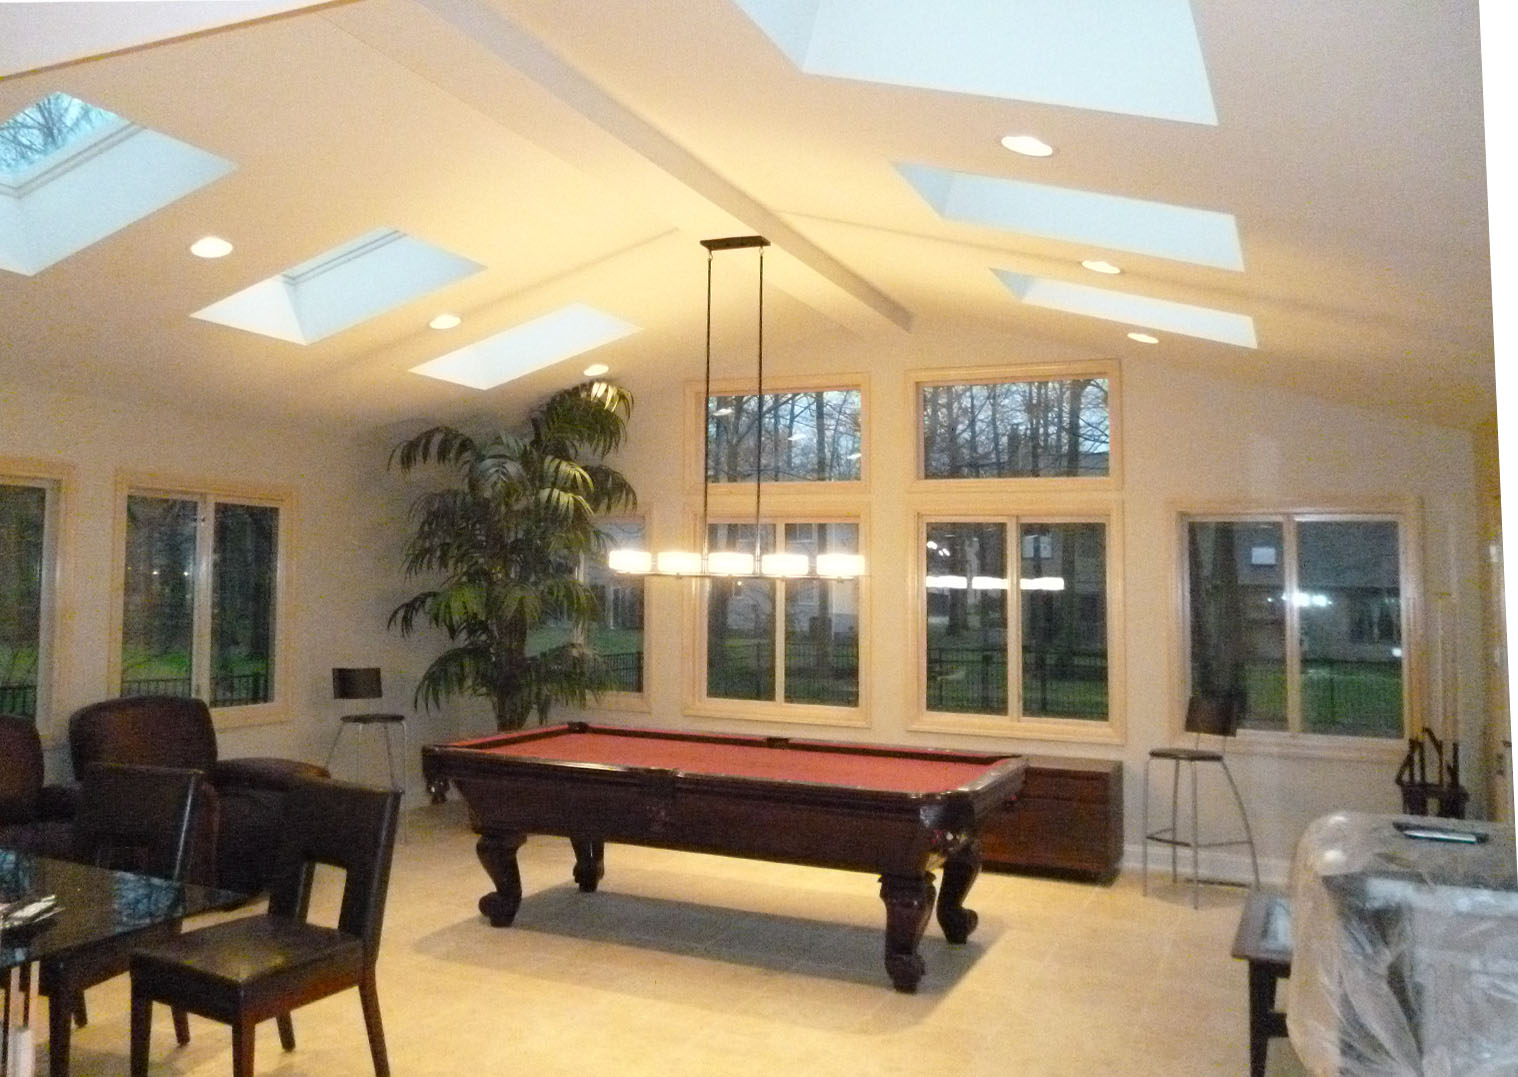 Family Room Renovation And Addition Smith Architects Llc